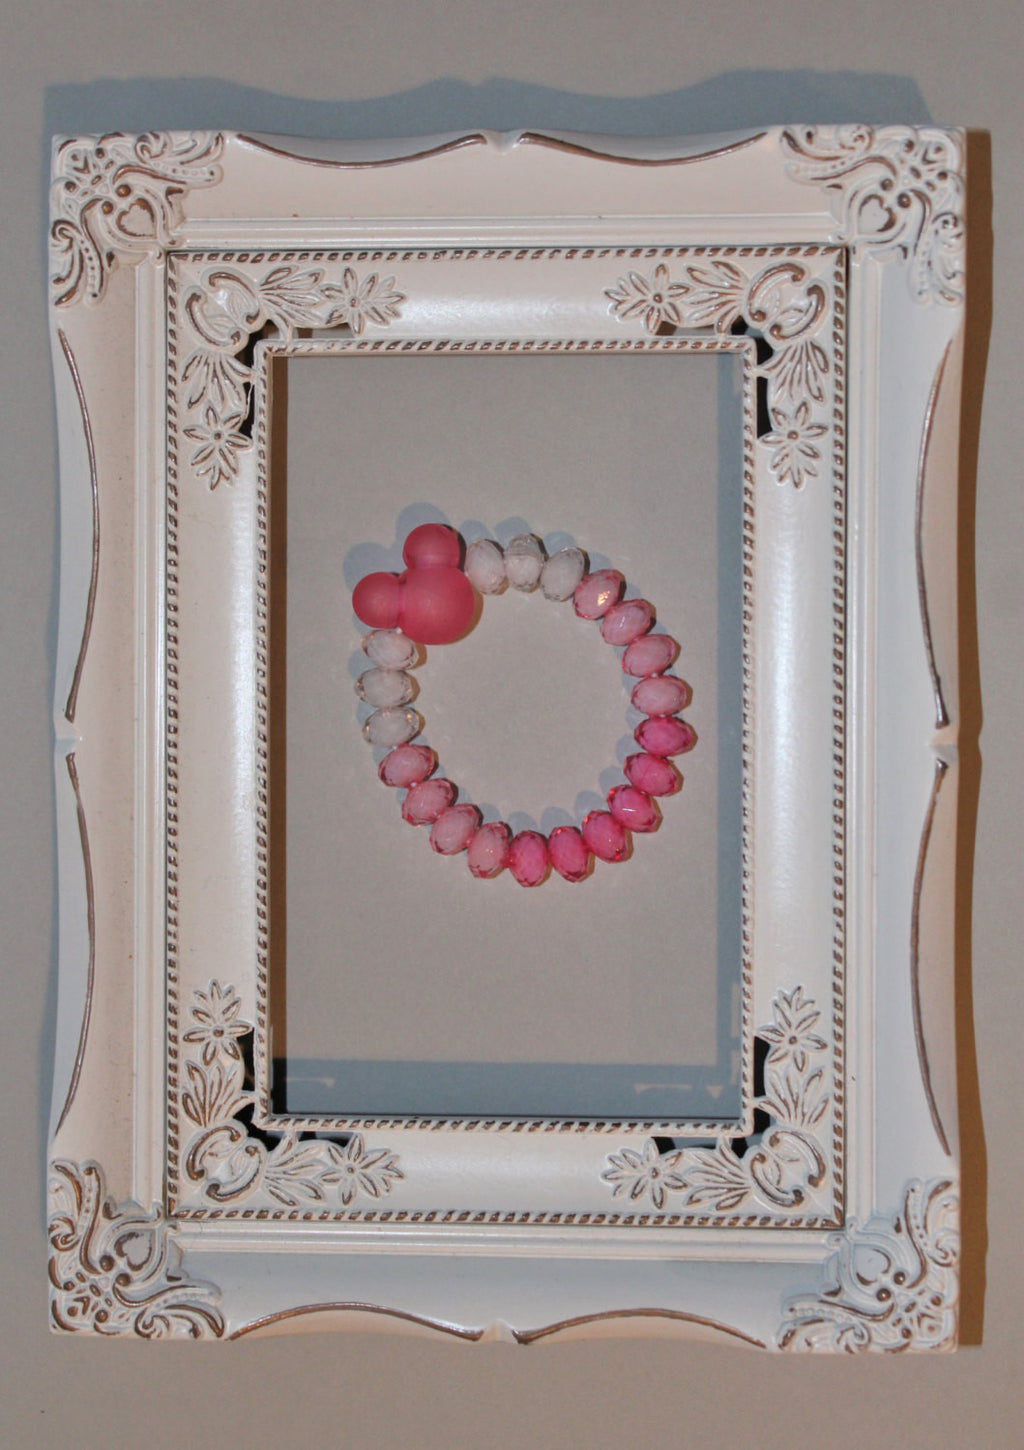 Pink Hombre Minnie Mouse Inspired Bracelet - JTJ15253